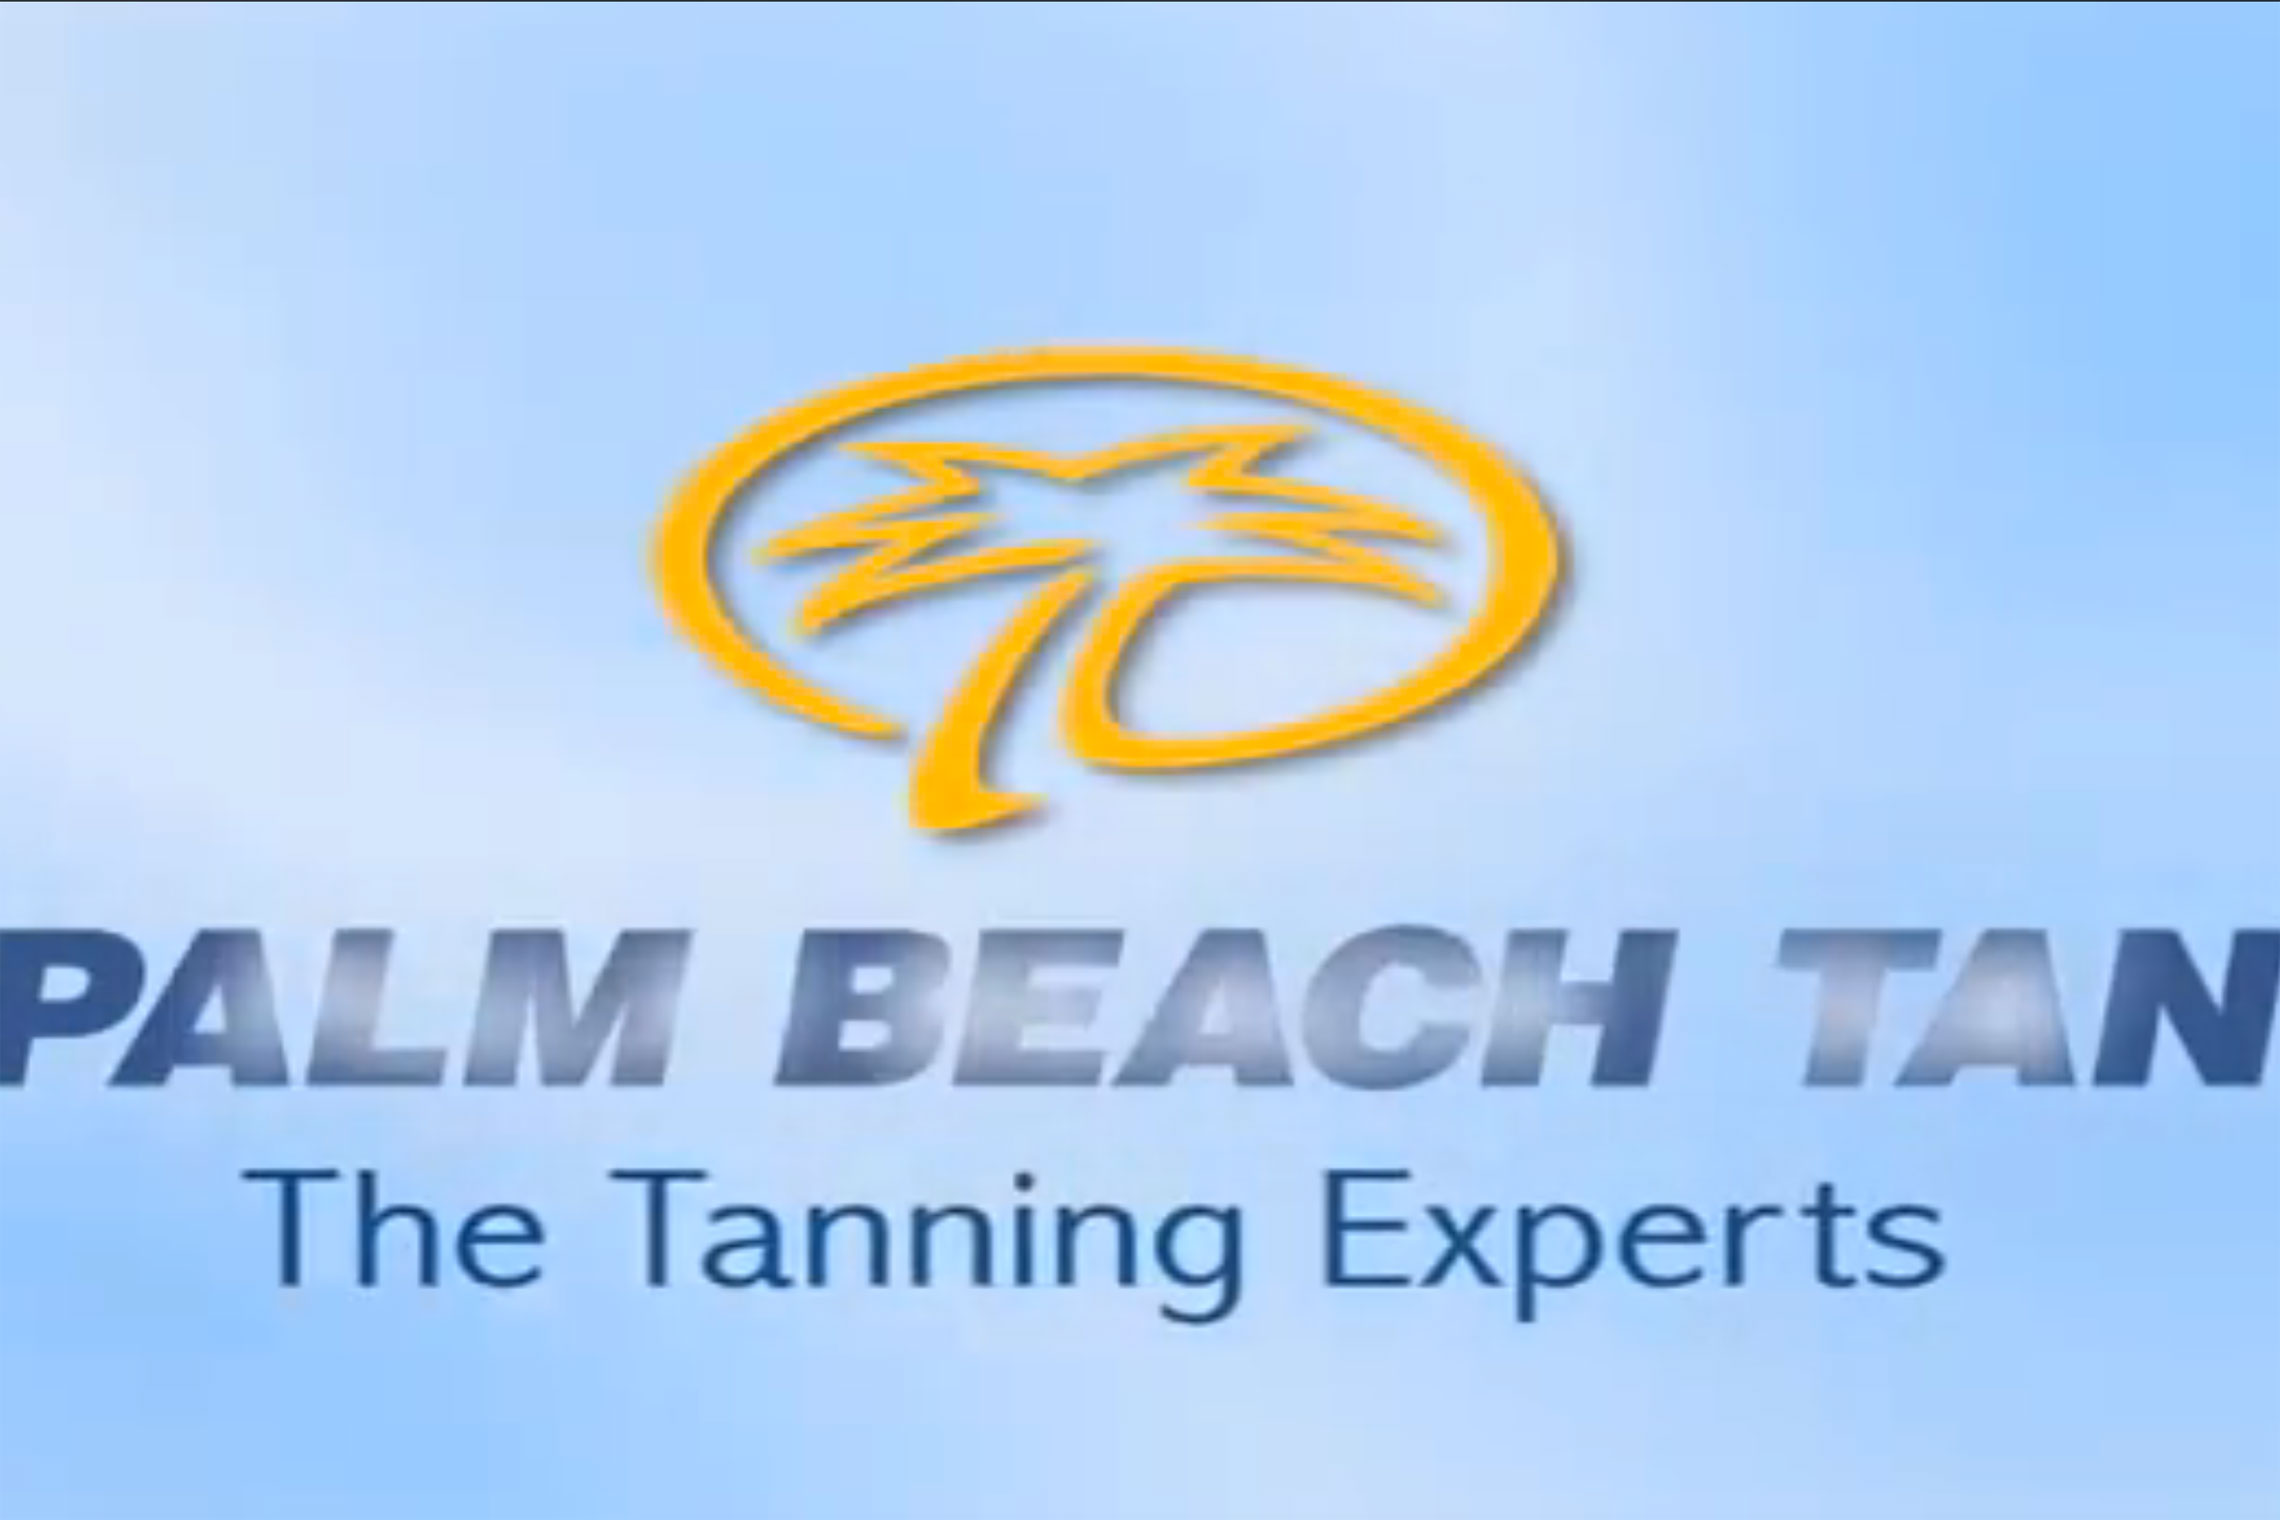 Palm Beach Tan Campaign - Advertising Videos